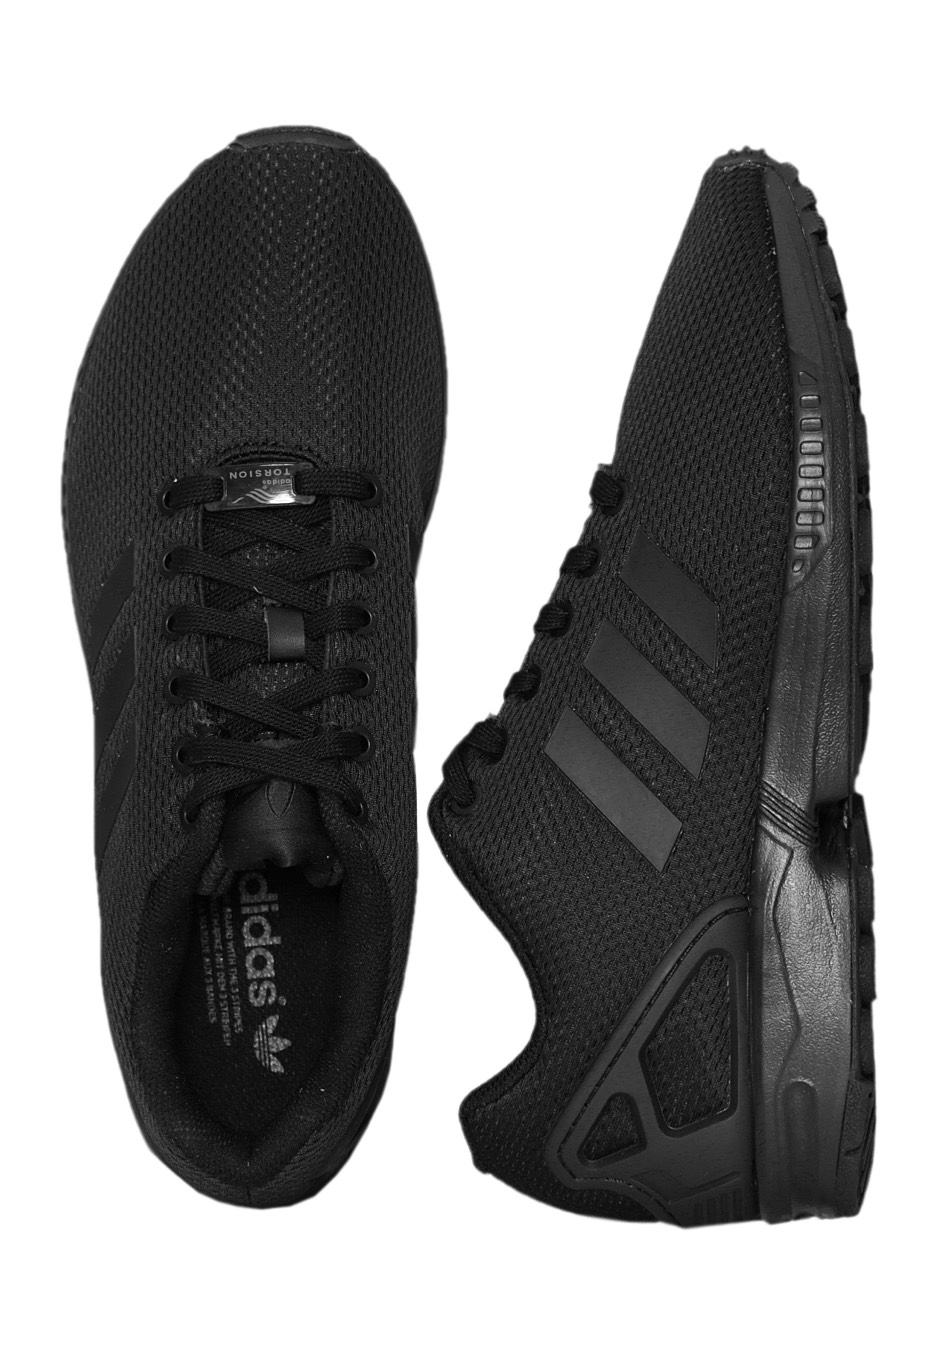 Adidas - ZX Flux Core Black Core Black Dark Grey - Shoes - Impericon.com  Worldwide 8c524b1be